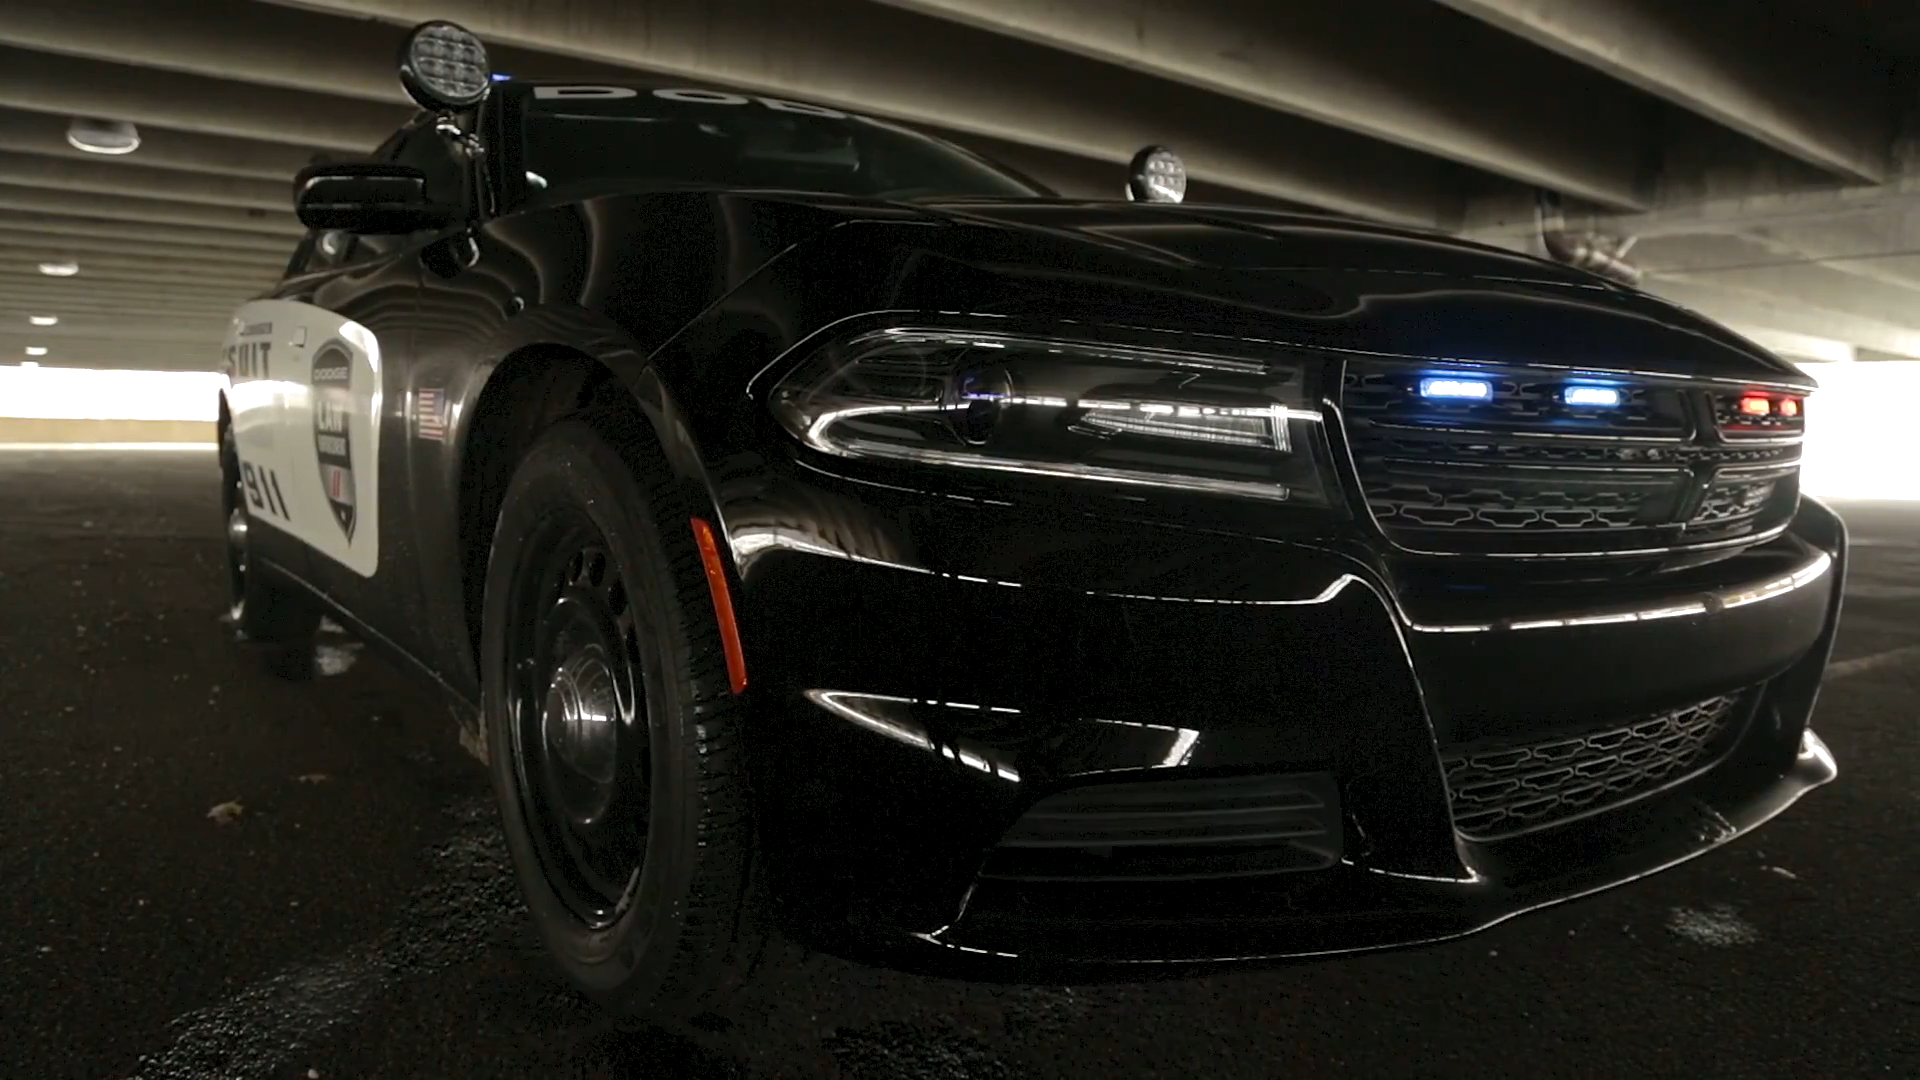 2018 Dodge Charger Pursuit Ambush Prevention System Enhanced To 07 Police Wiring Diagram Protect Cops Autoblog